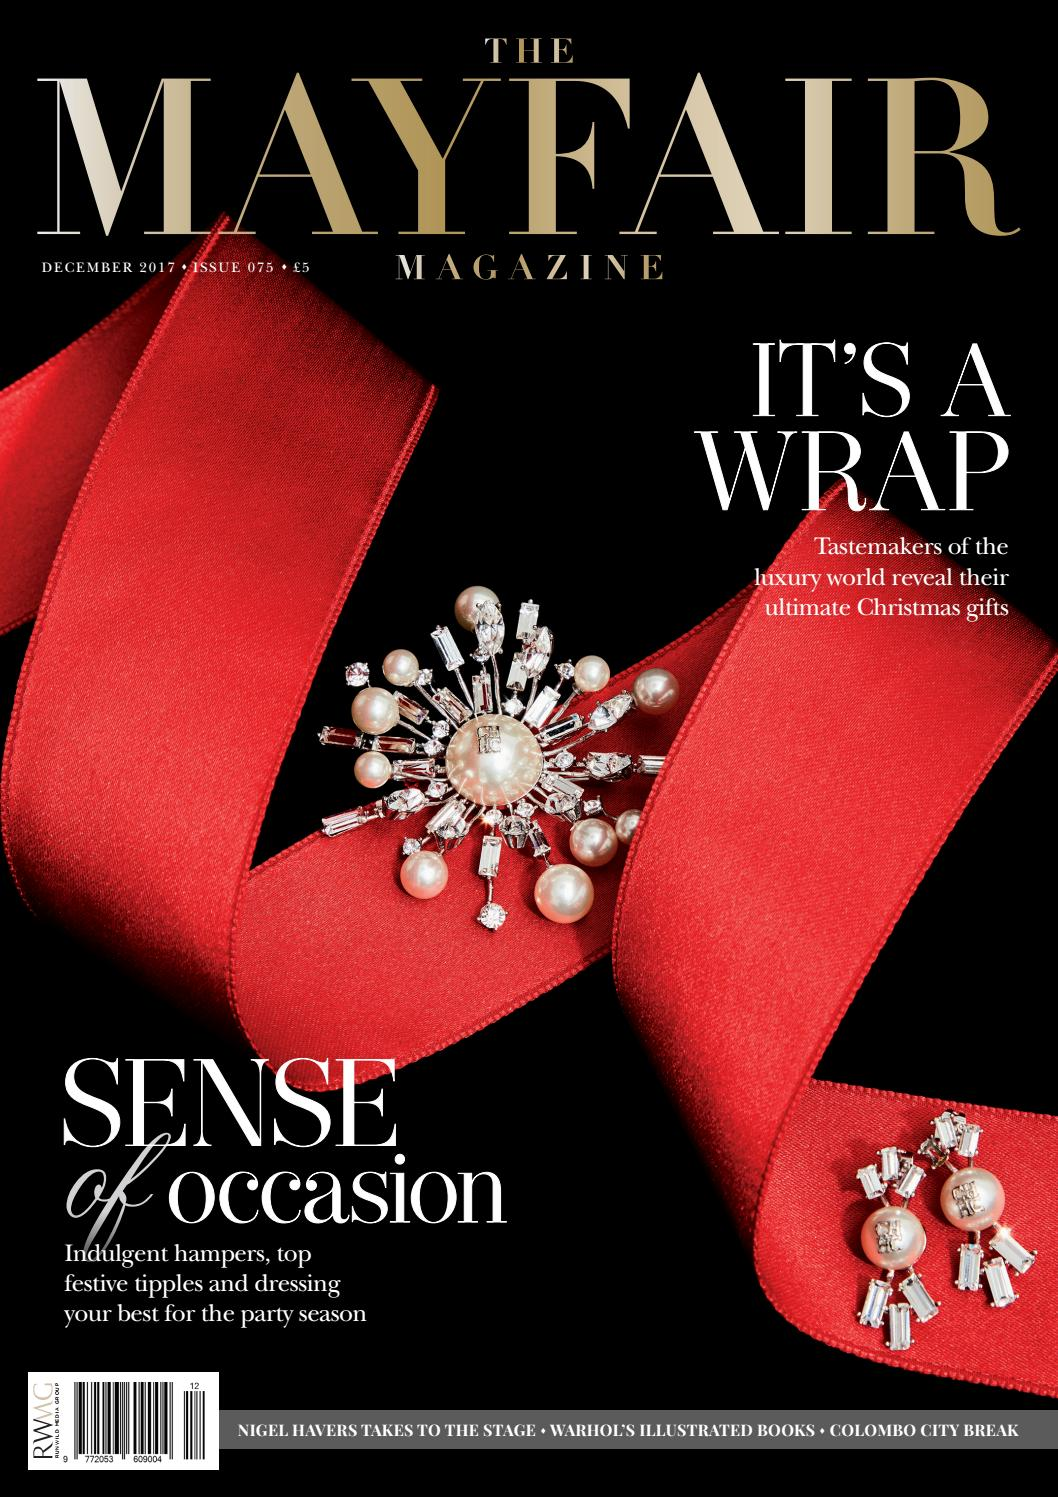 7211a8ec78 The Mayfair Magazine December 2017 by Runwild Media Group - issuu